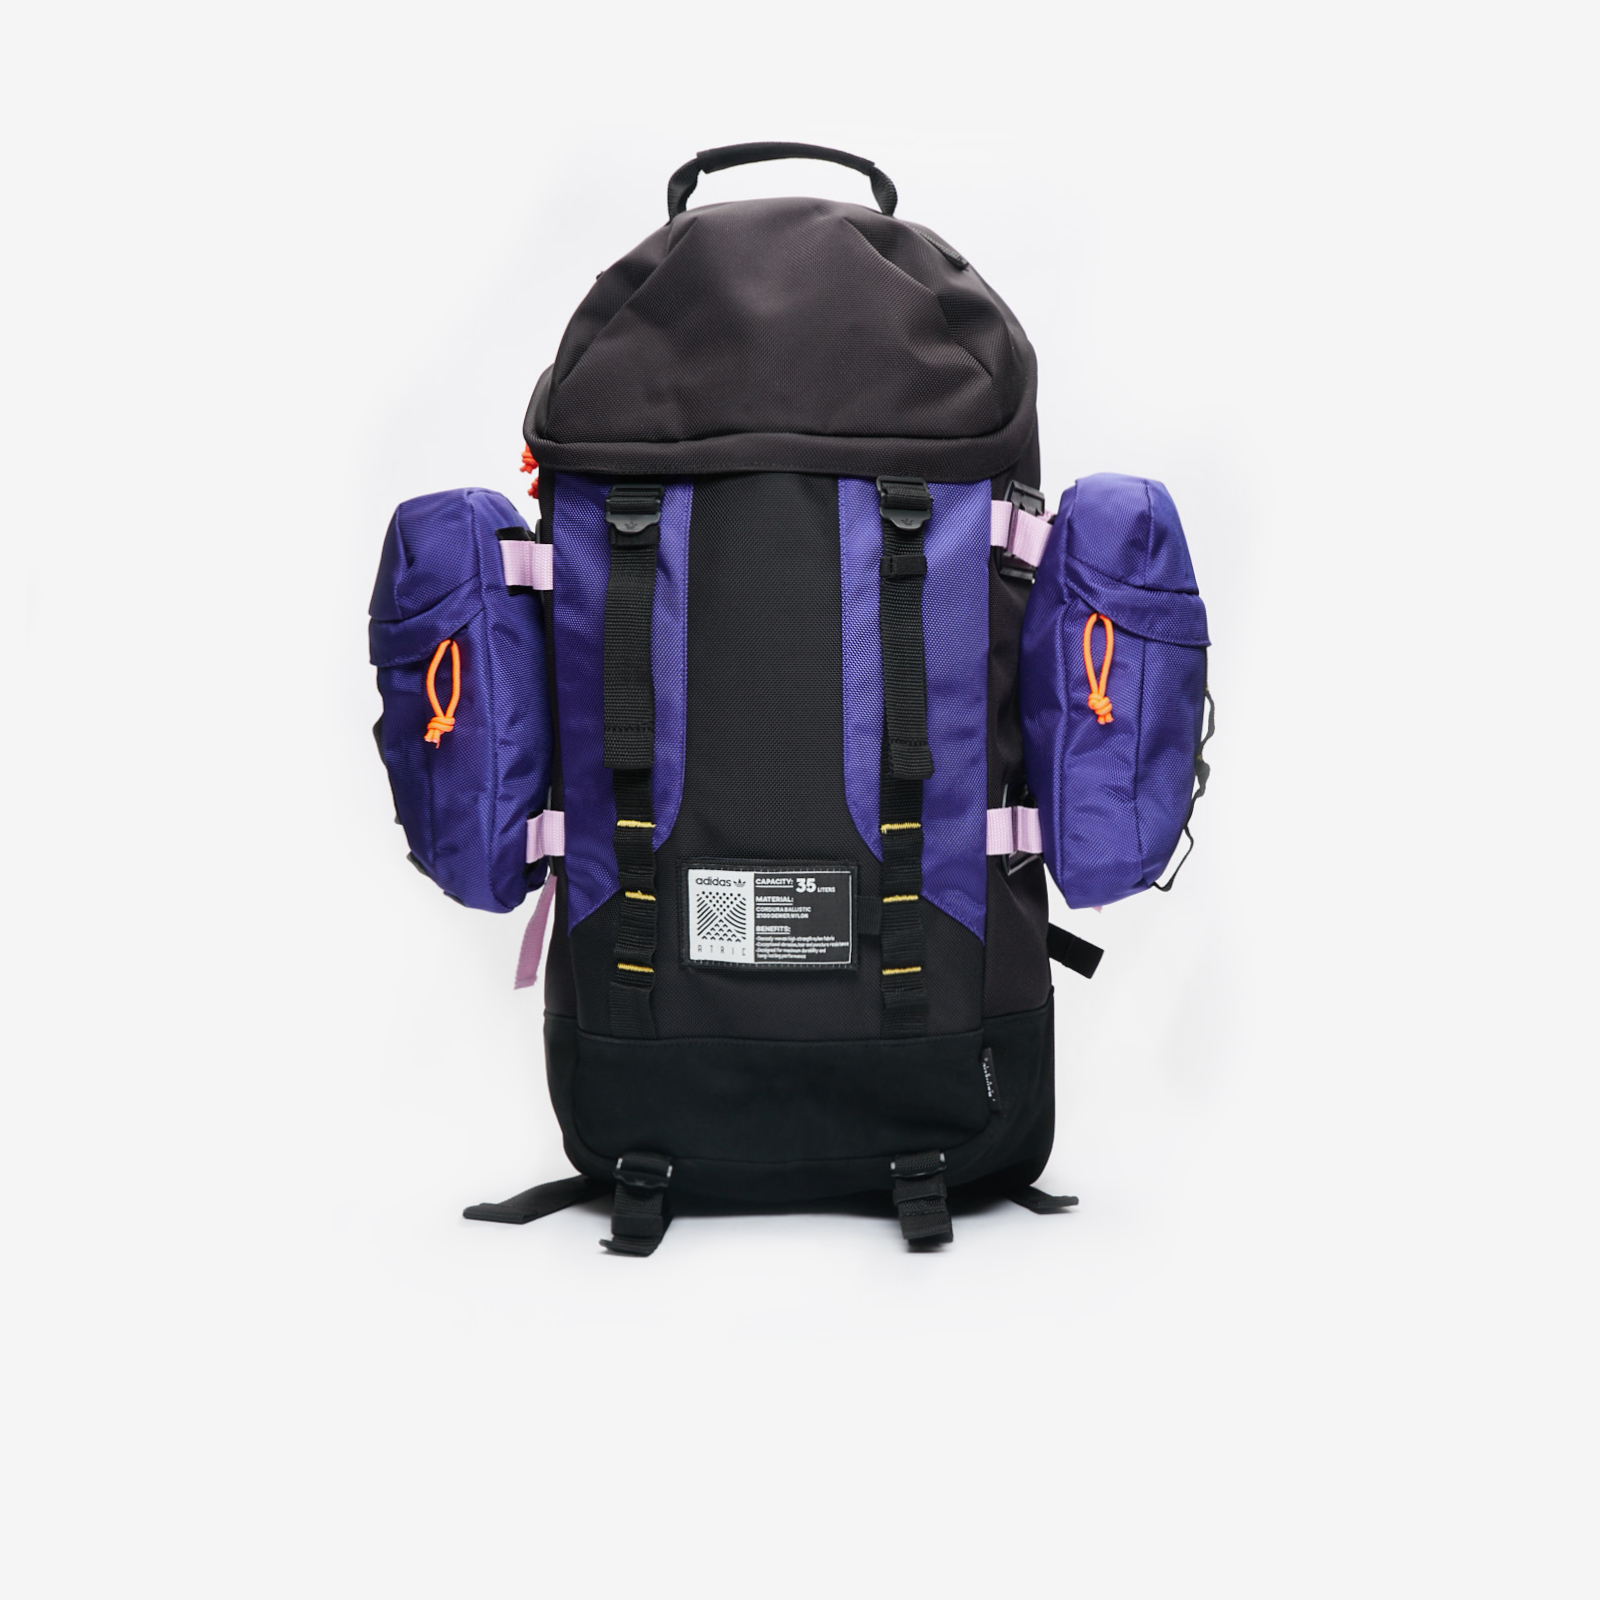 adidas Atric Backpack XL - Dh3259 - Sneakersnstuff  0d0ad2e2ba2b7